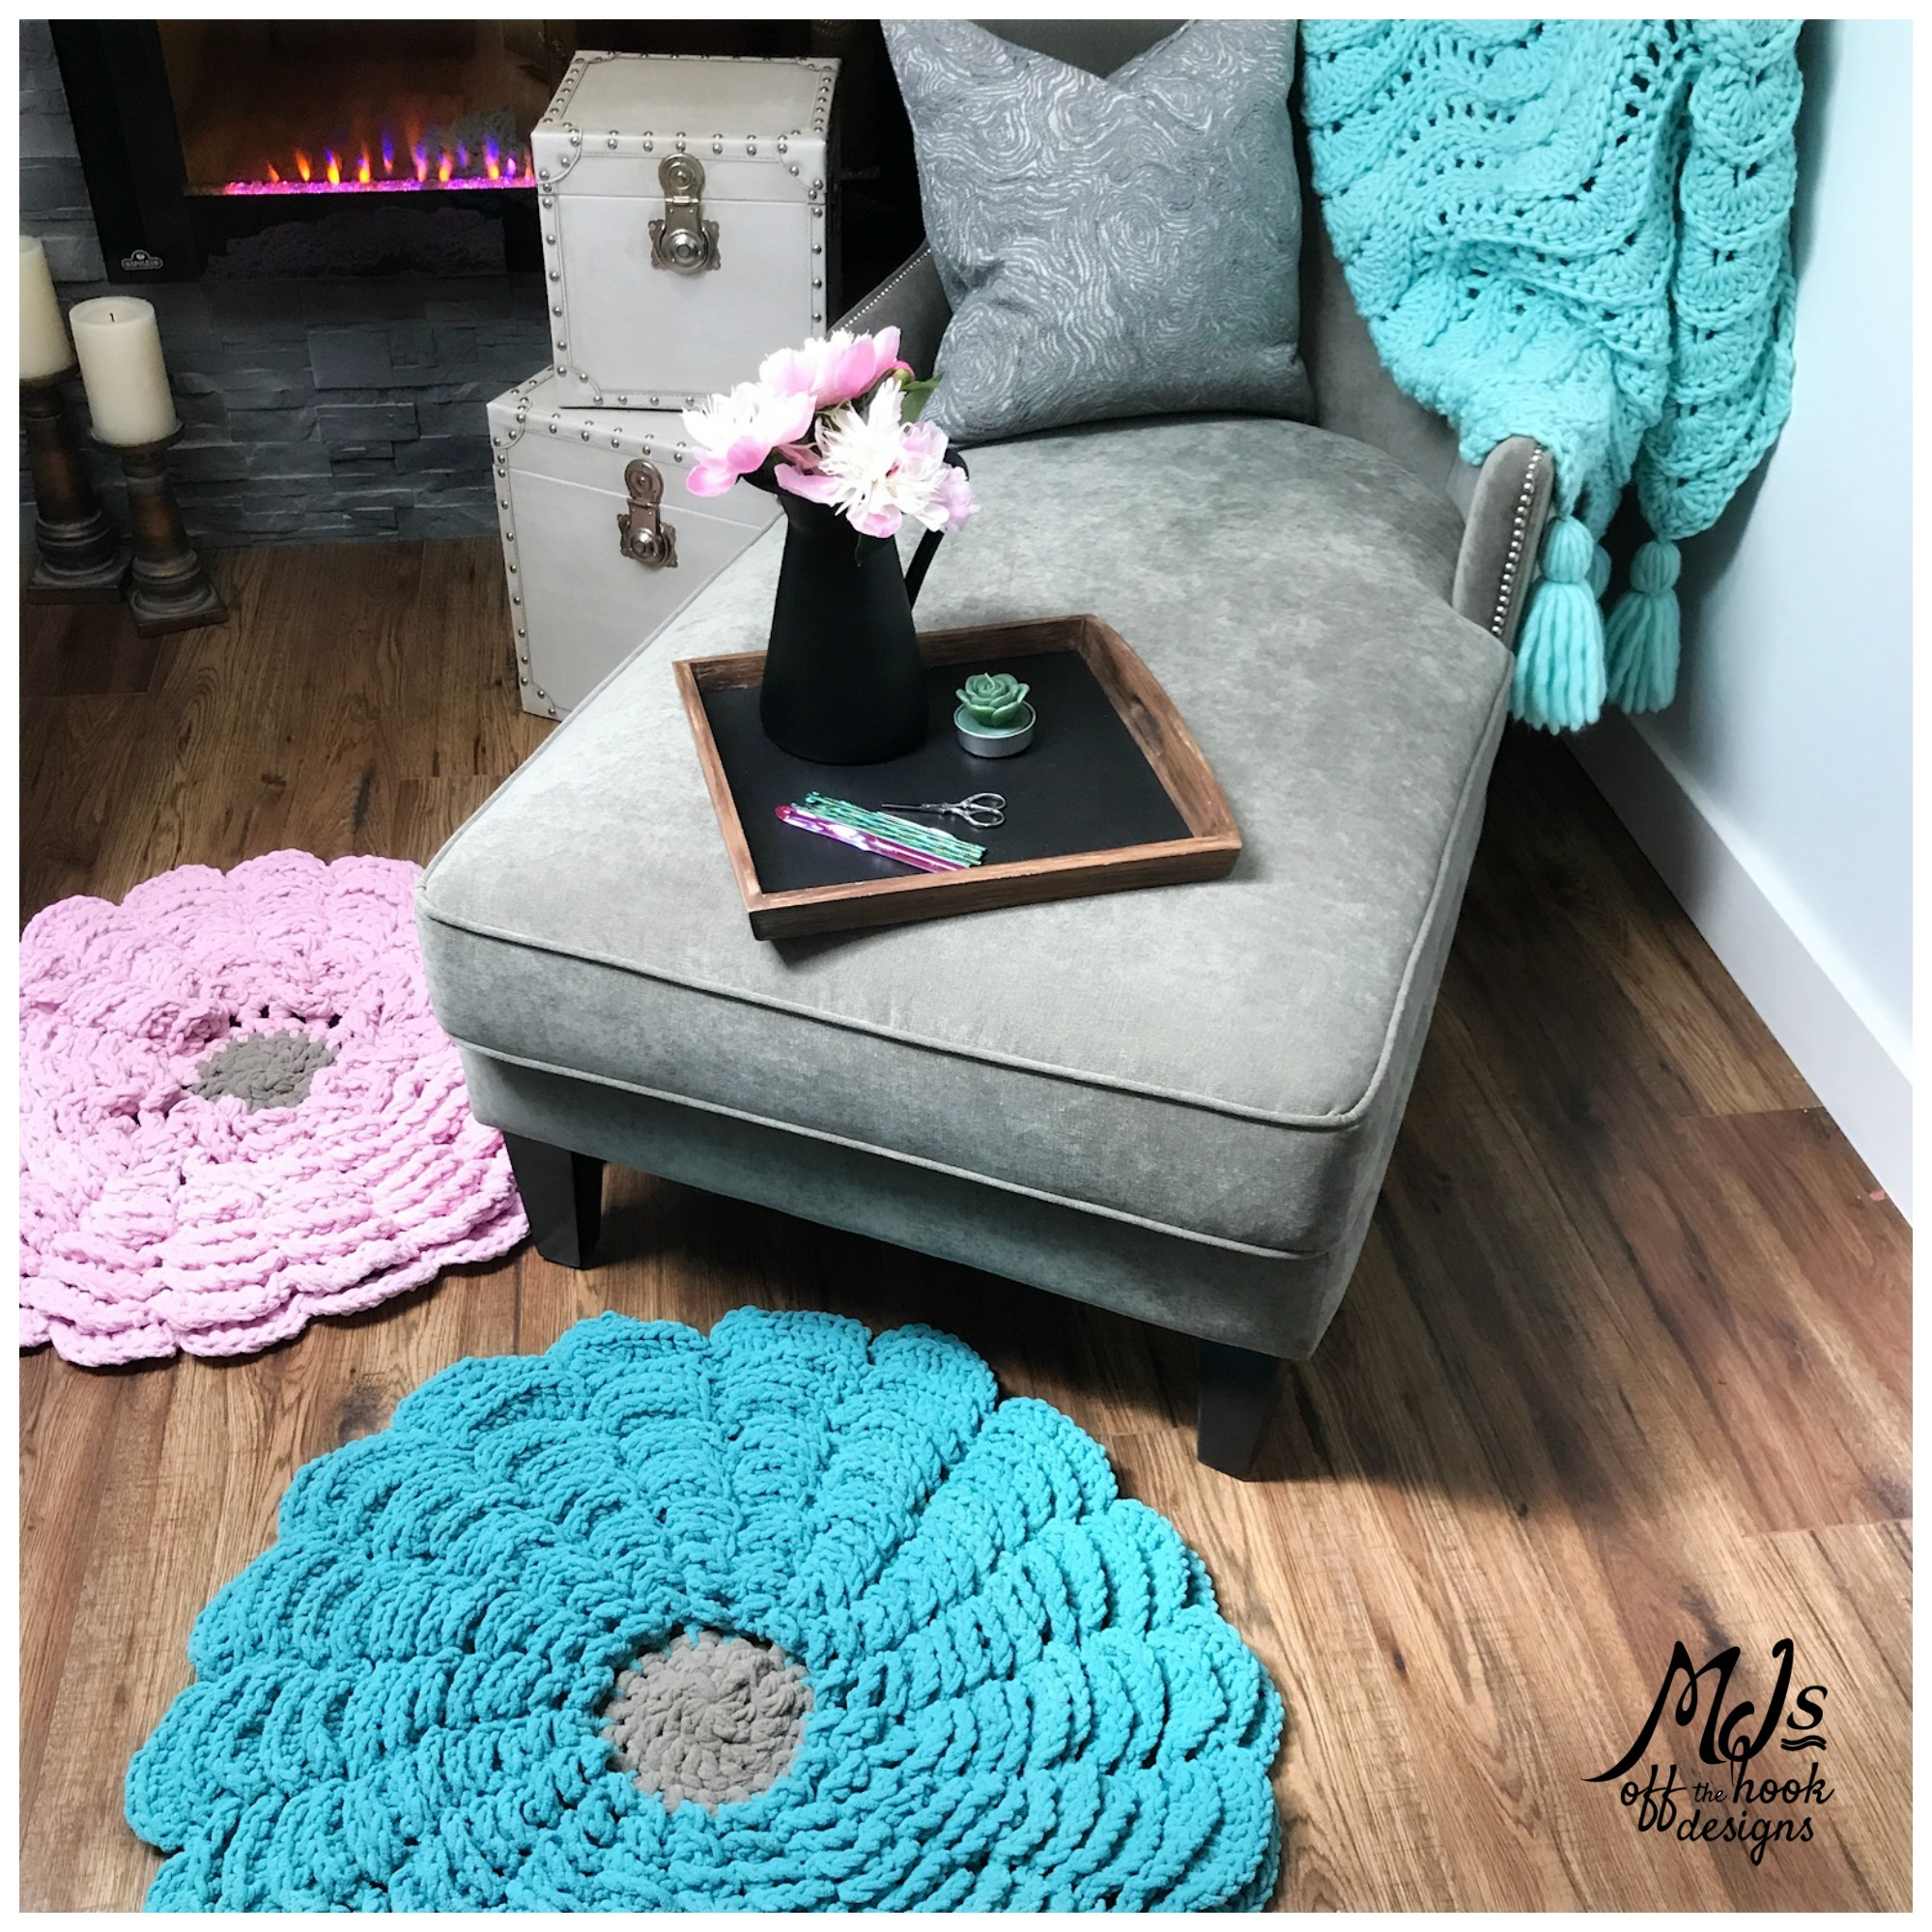 Crochet Flower Rug Video Tutorial Mj